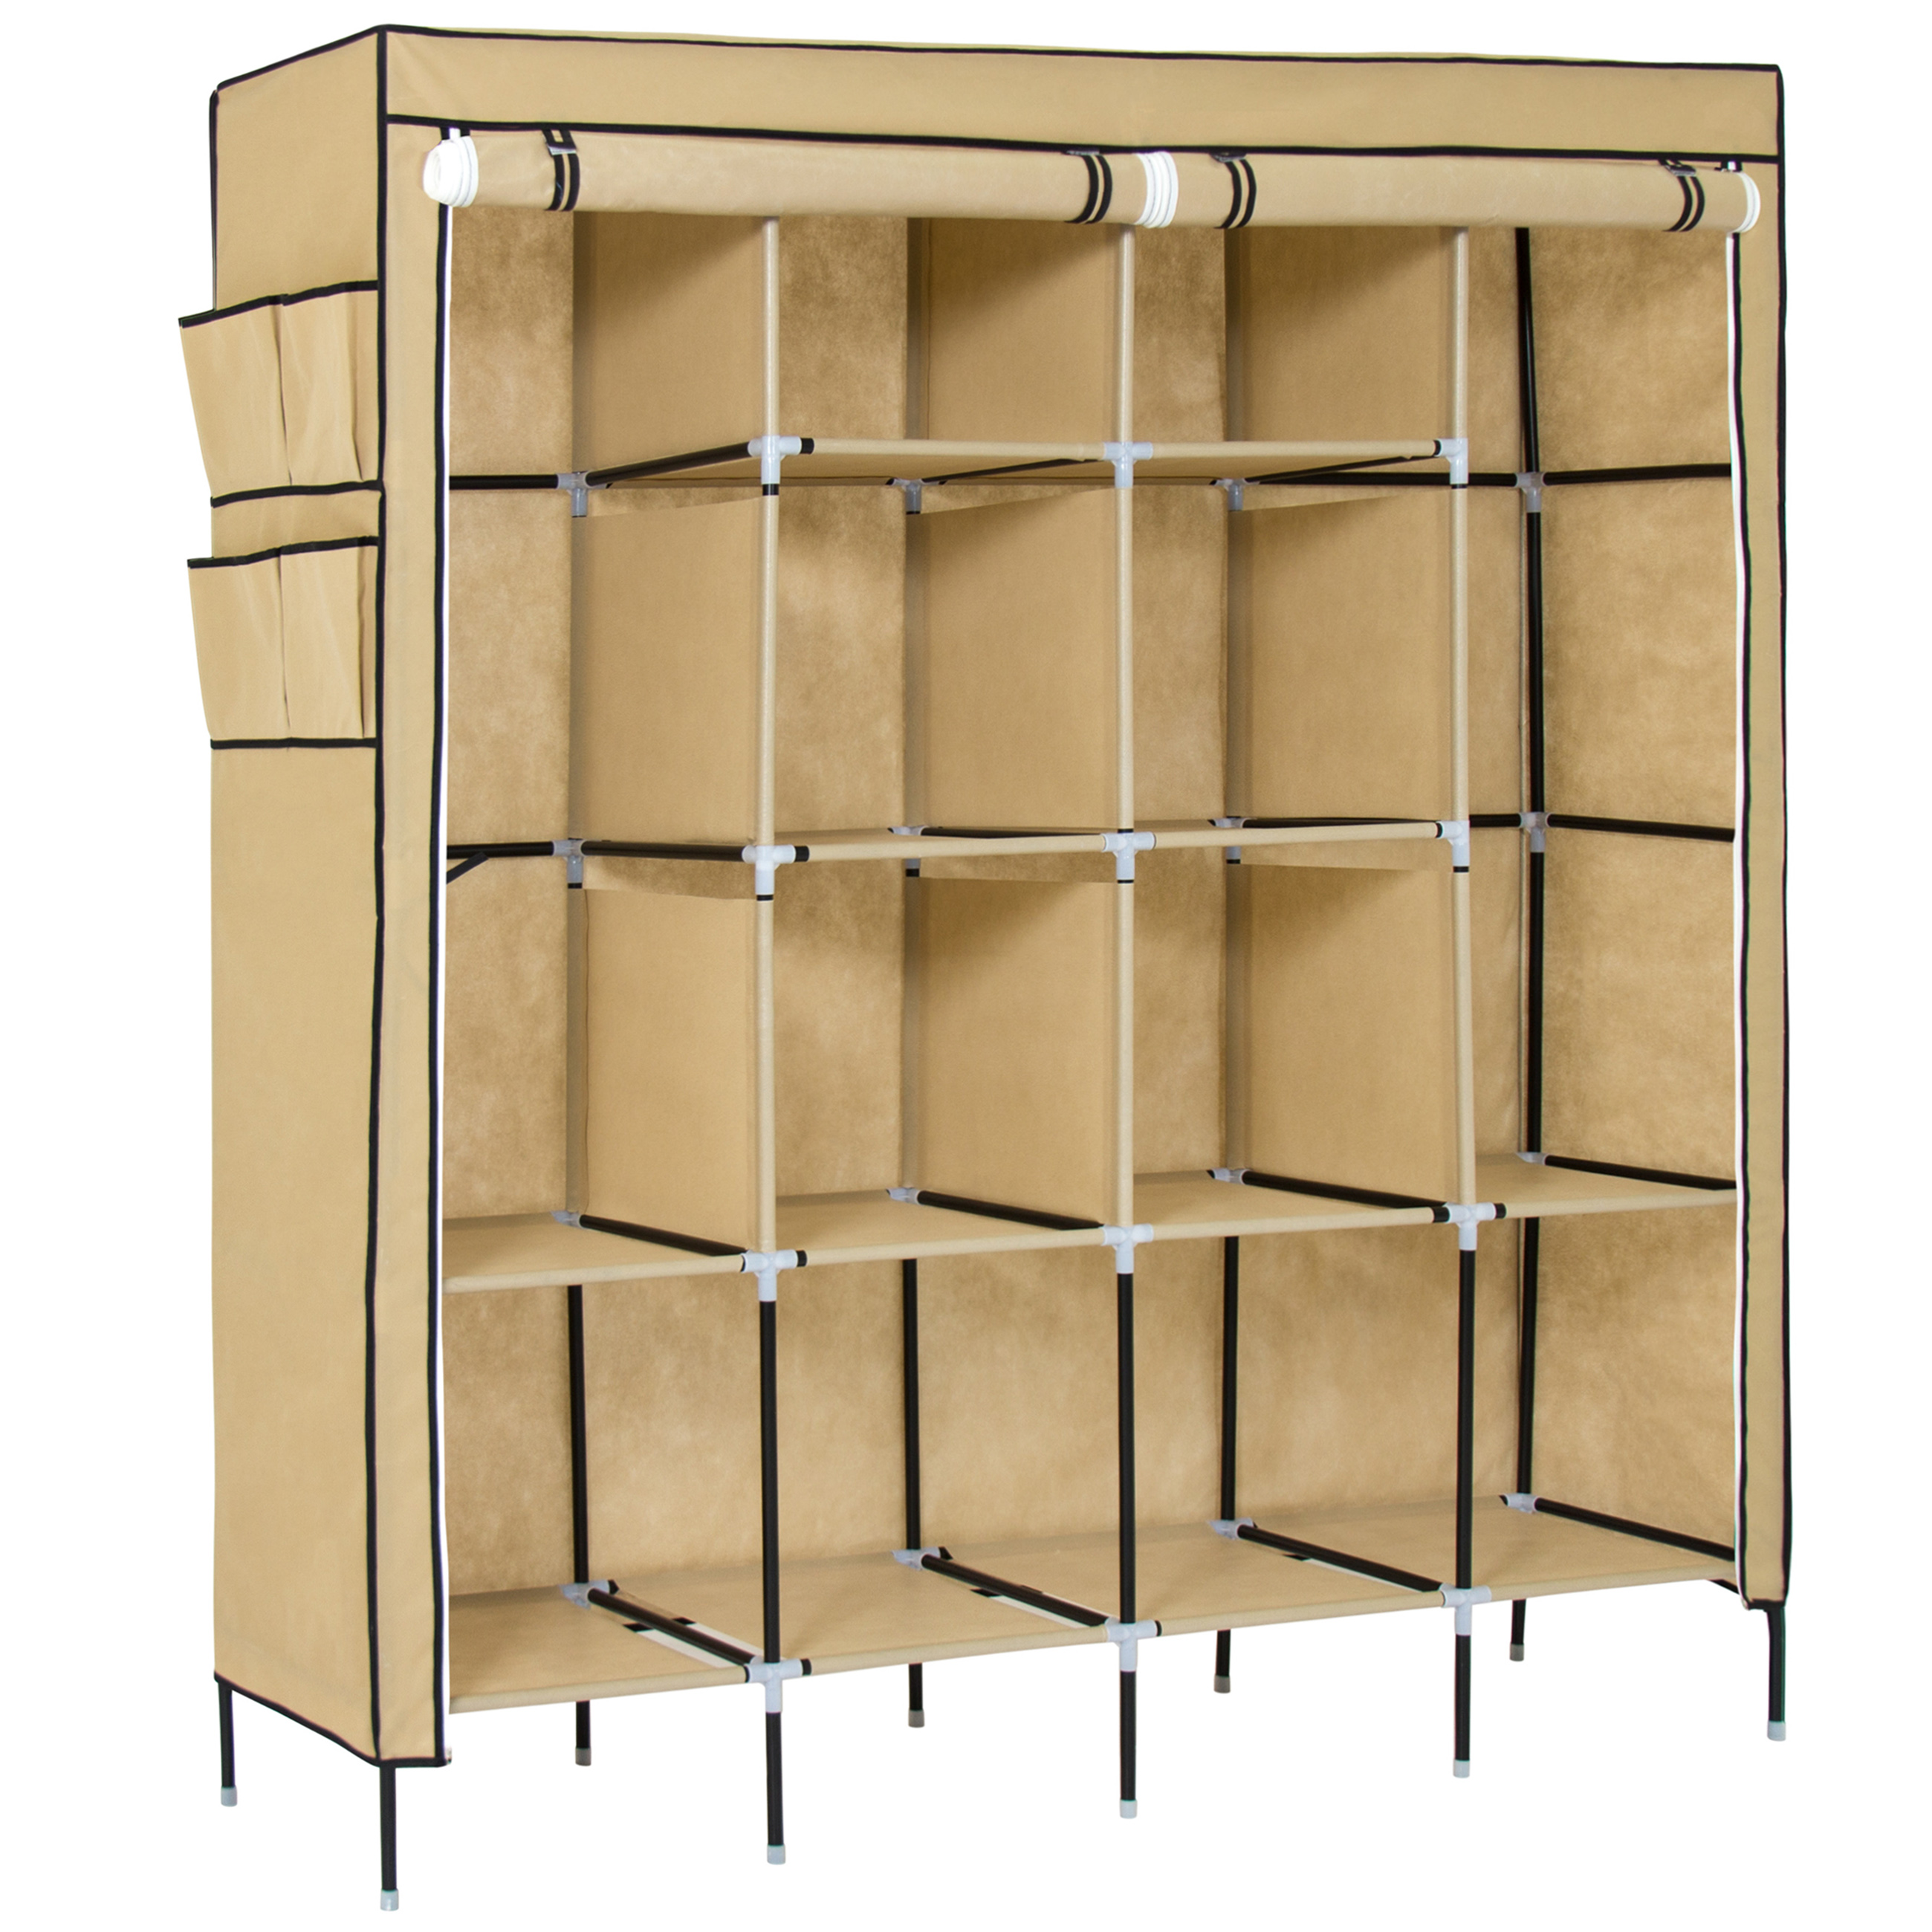 Best Choice Products Portable Fabric Closet System Wardrobe Storage Rack, Beige